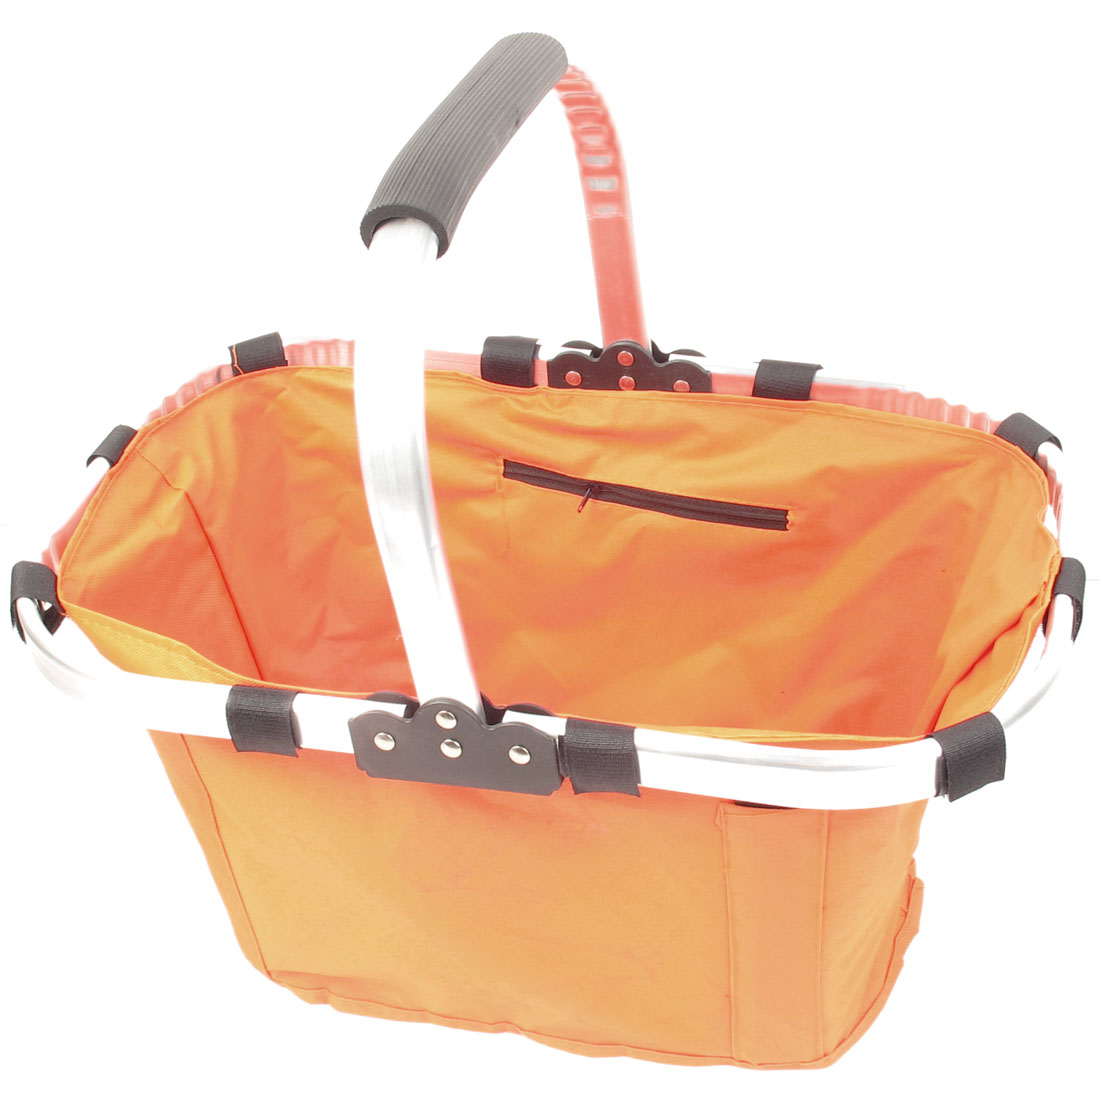 Alloy Frame Orange Foldable Eco Tote Bag Picnic Grocery Shopping Basket w Handle